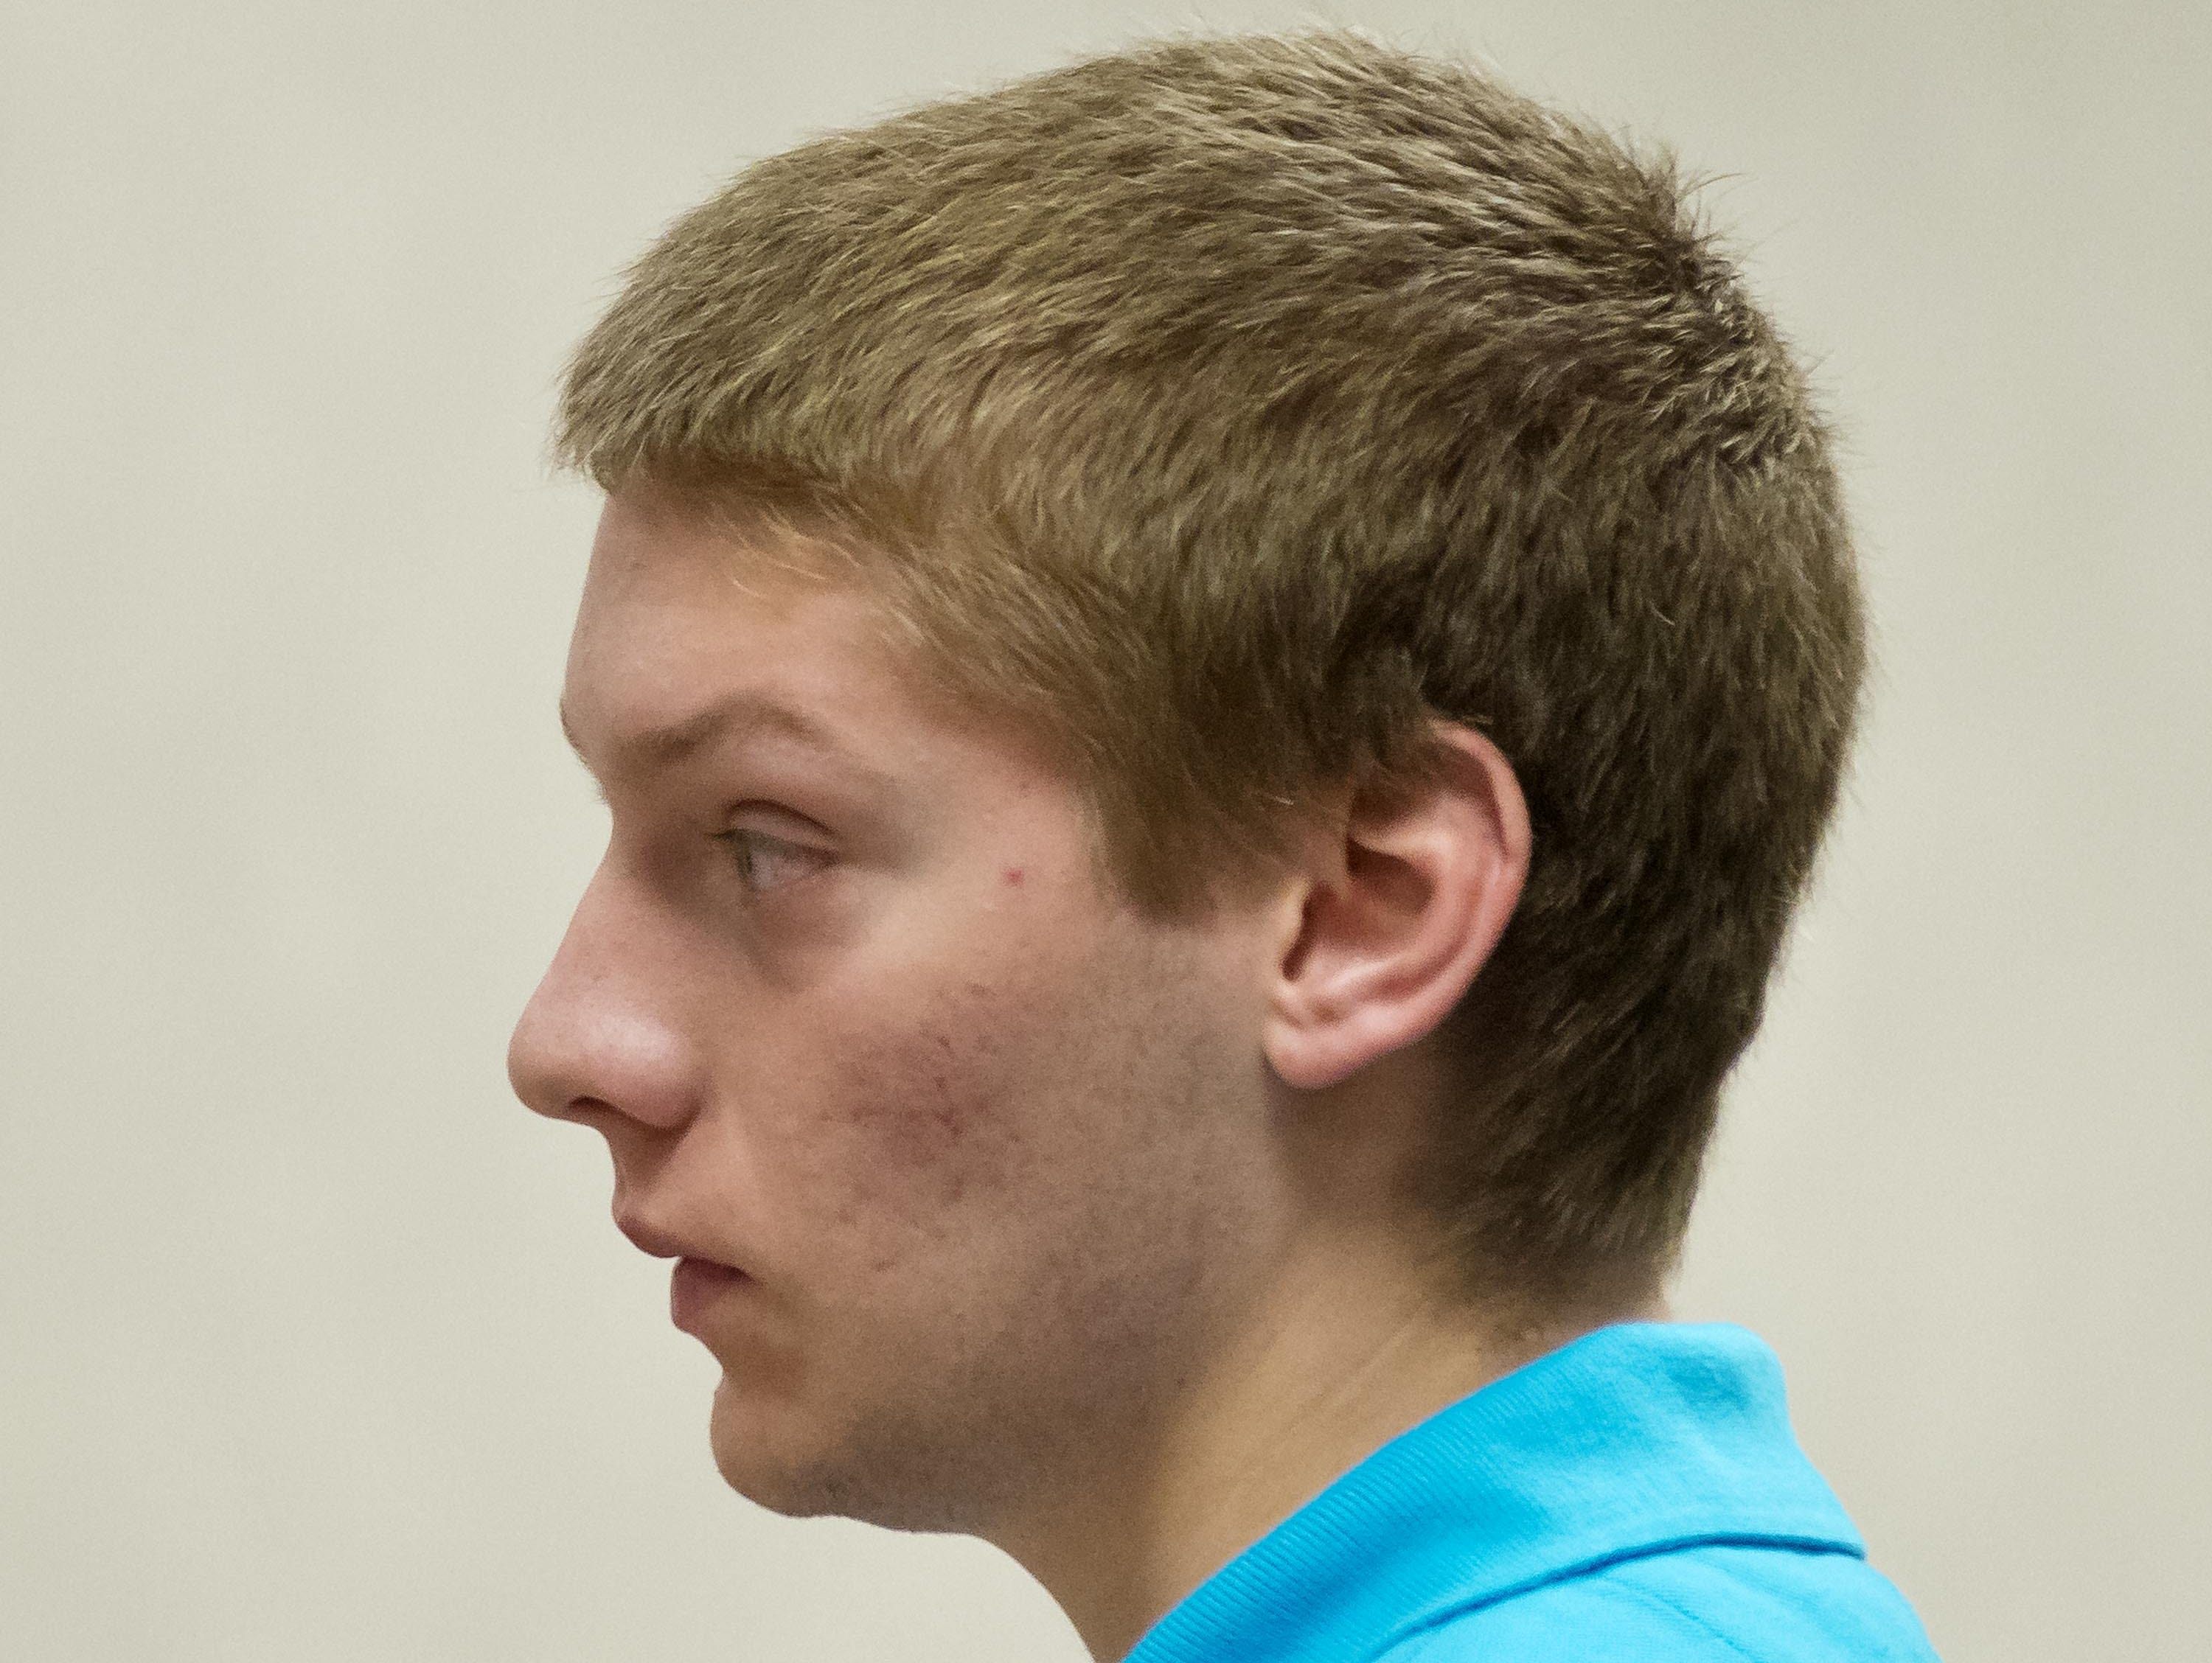 Colby Darling, one of five former Milton High School football players accused of hazing, pleads not guilty to a charge of simple assault in Vermont Superior Court in Burlington on Tuesday, August 19, 2014. Also accused are Ryan Carlson, Brian Lasell, Brandon Belliveau and William Jenkins. Carlson and Jenkins are out of state and did not appear at their arraignments.